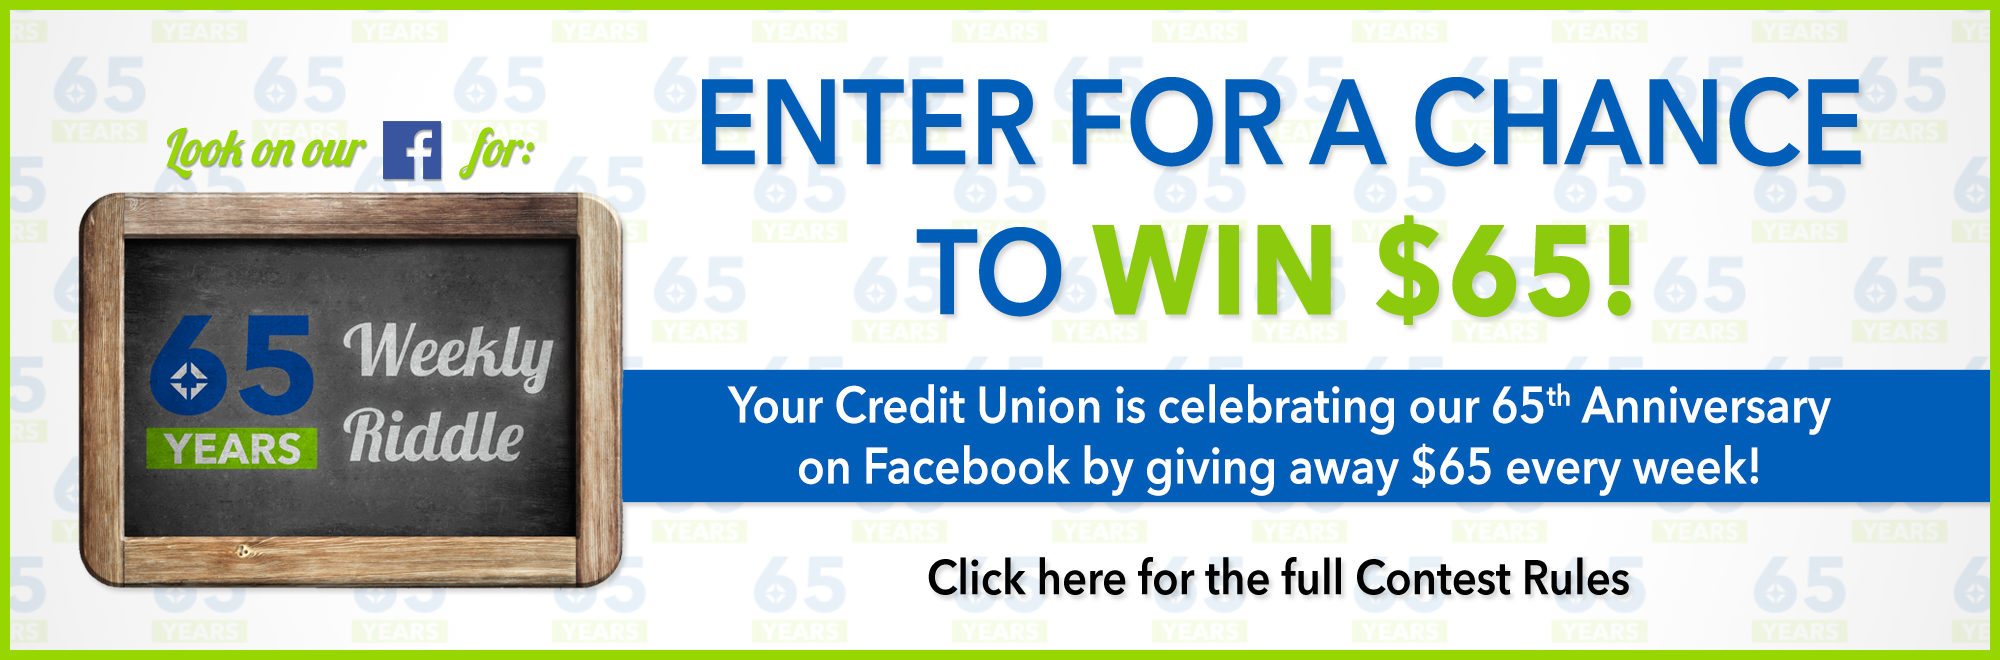 SACFCU is celebrating their 65 anniversary by giving out $65 every week for the next 9 weeks! Click for full contest details.